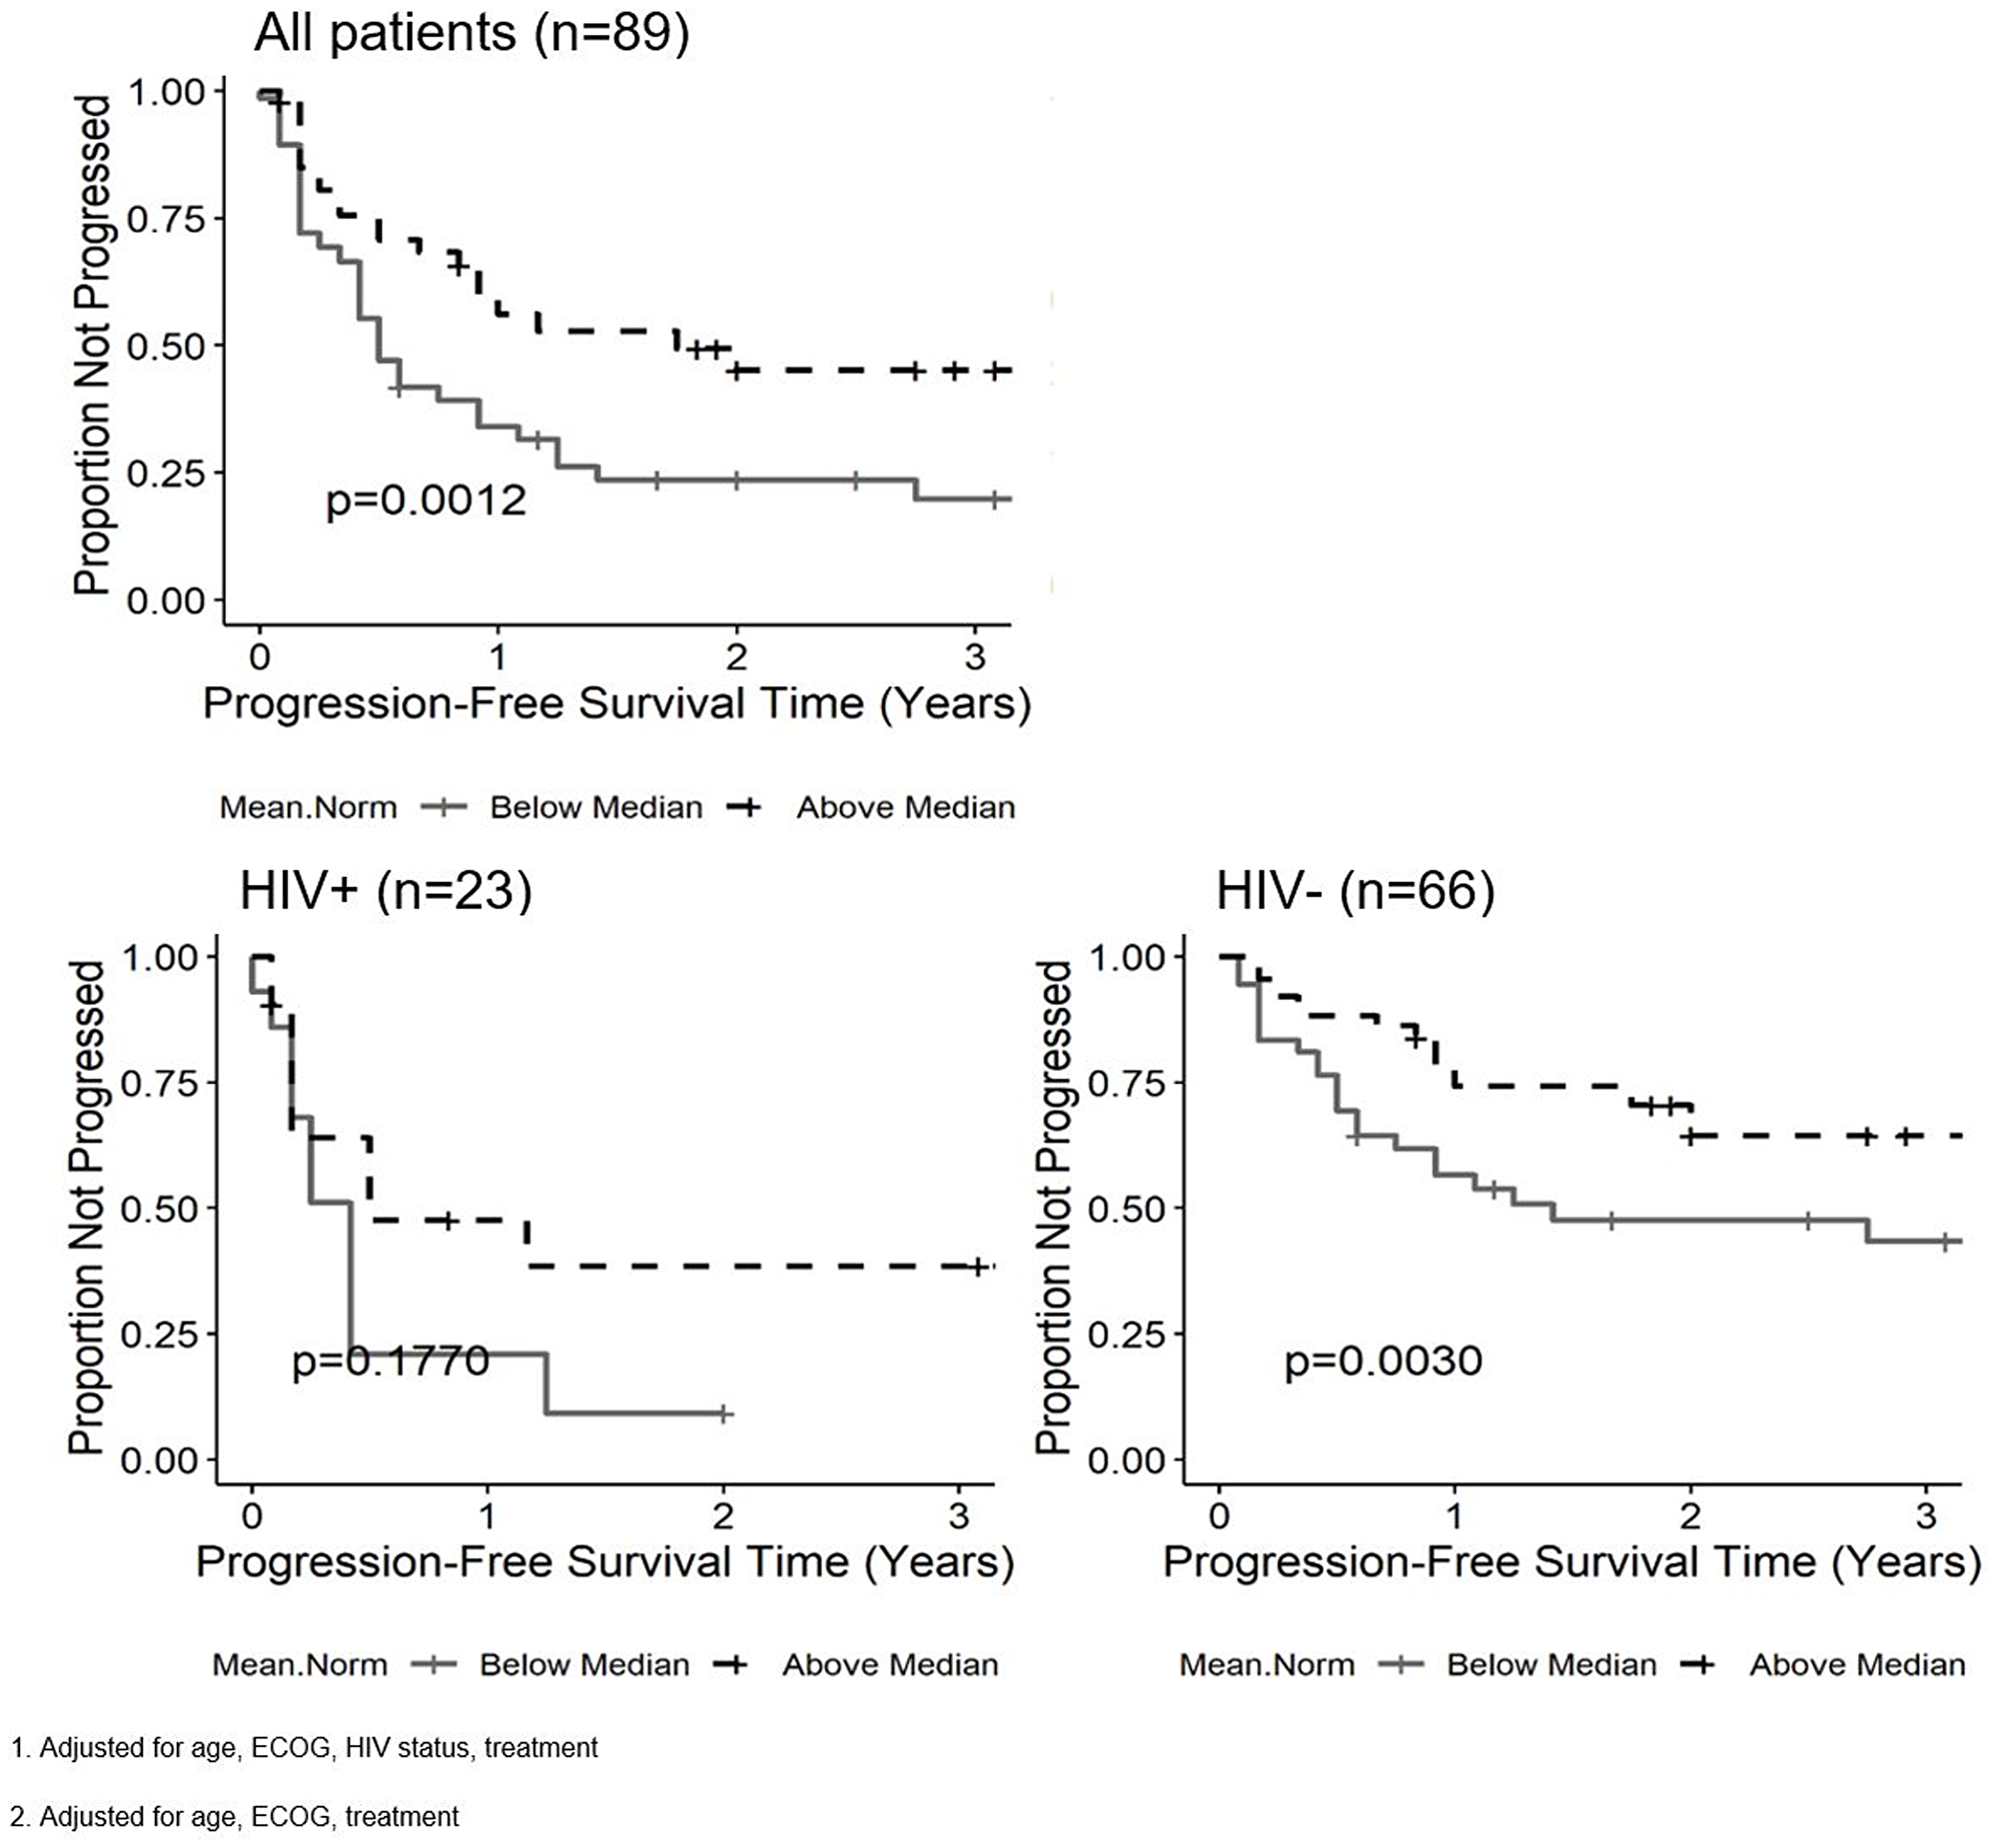 Kaplan-Meier curves for the nADCmean parameter and progression free survival (PFS) in all patients1, patients living with HIV2 (PLWH) and HIV negative patients2.